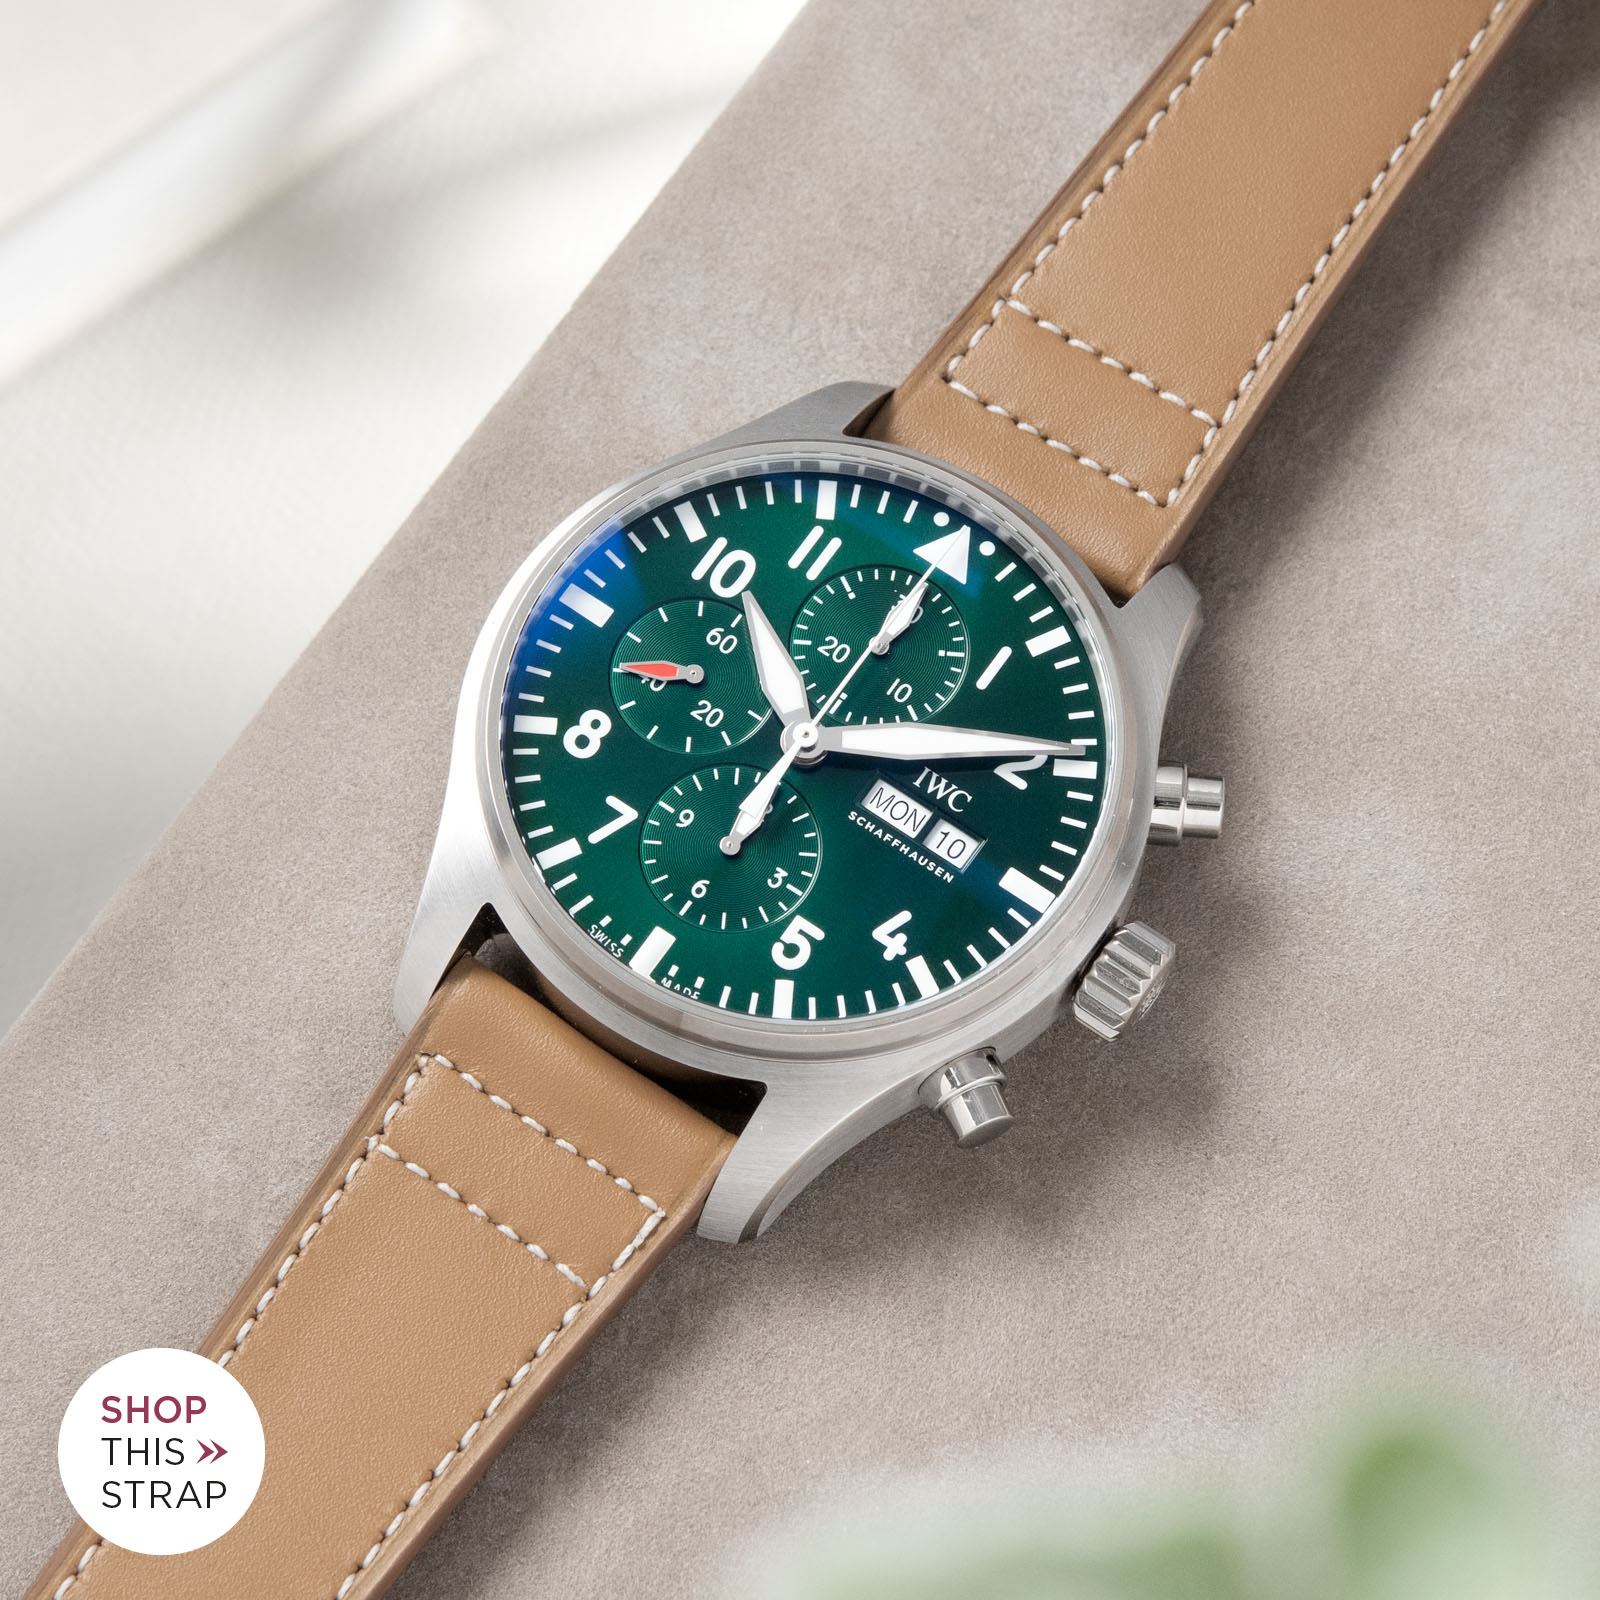 Bulang and Sons_Strapguide_IWC Pilots Watch Chronograph Spitfire_Taupe Brown Retro Leather Watch Strap